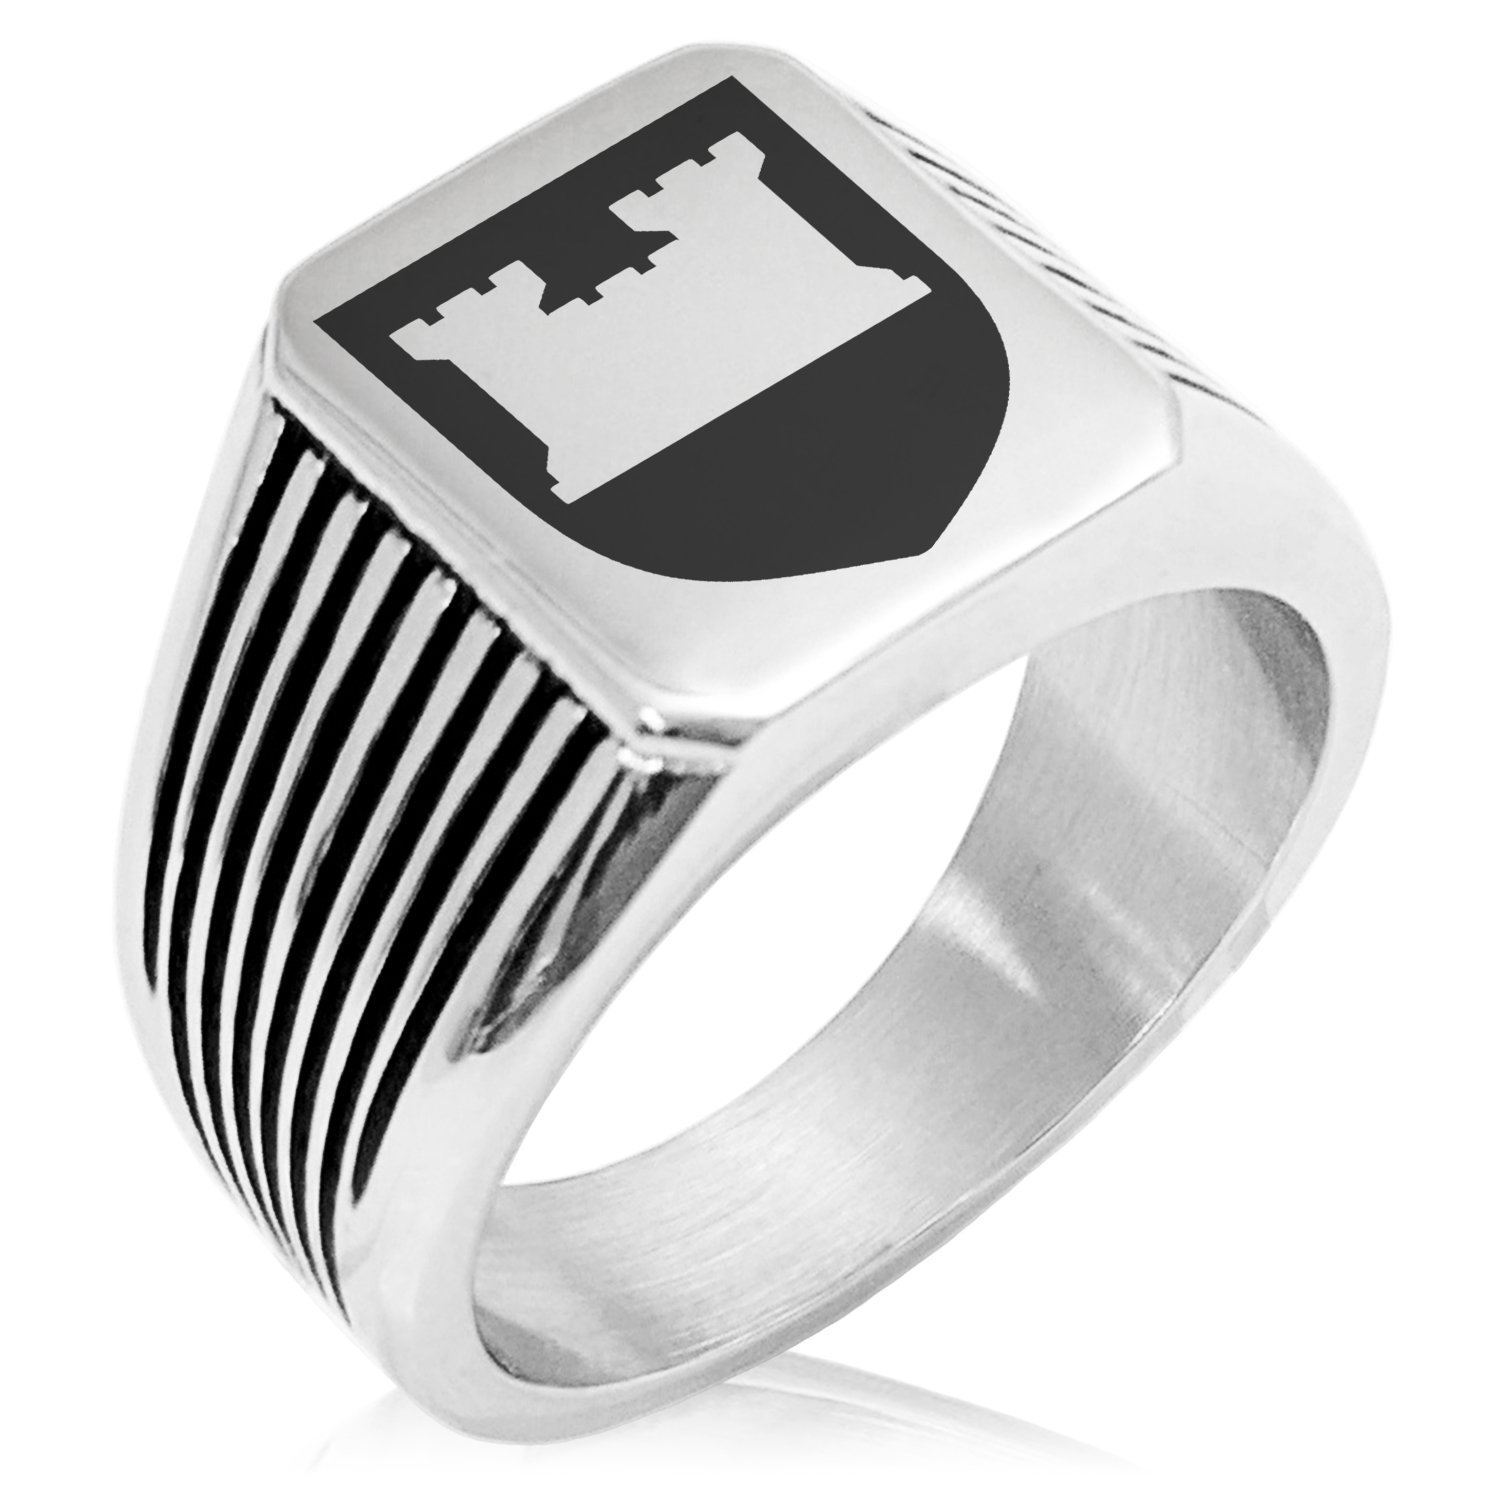 Two-Tone Stainless Steel Castle Protection Coat of Arms Shield Engraved Needle Stripe Pattern Biker Style Polished Ring, Size 9